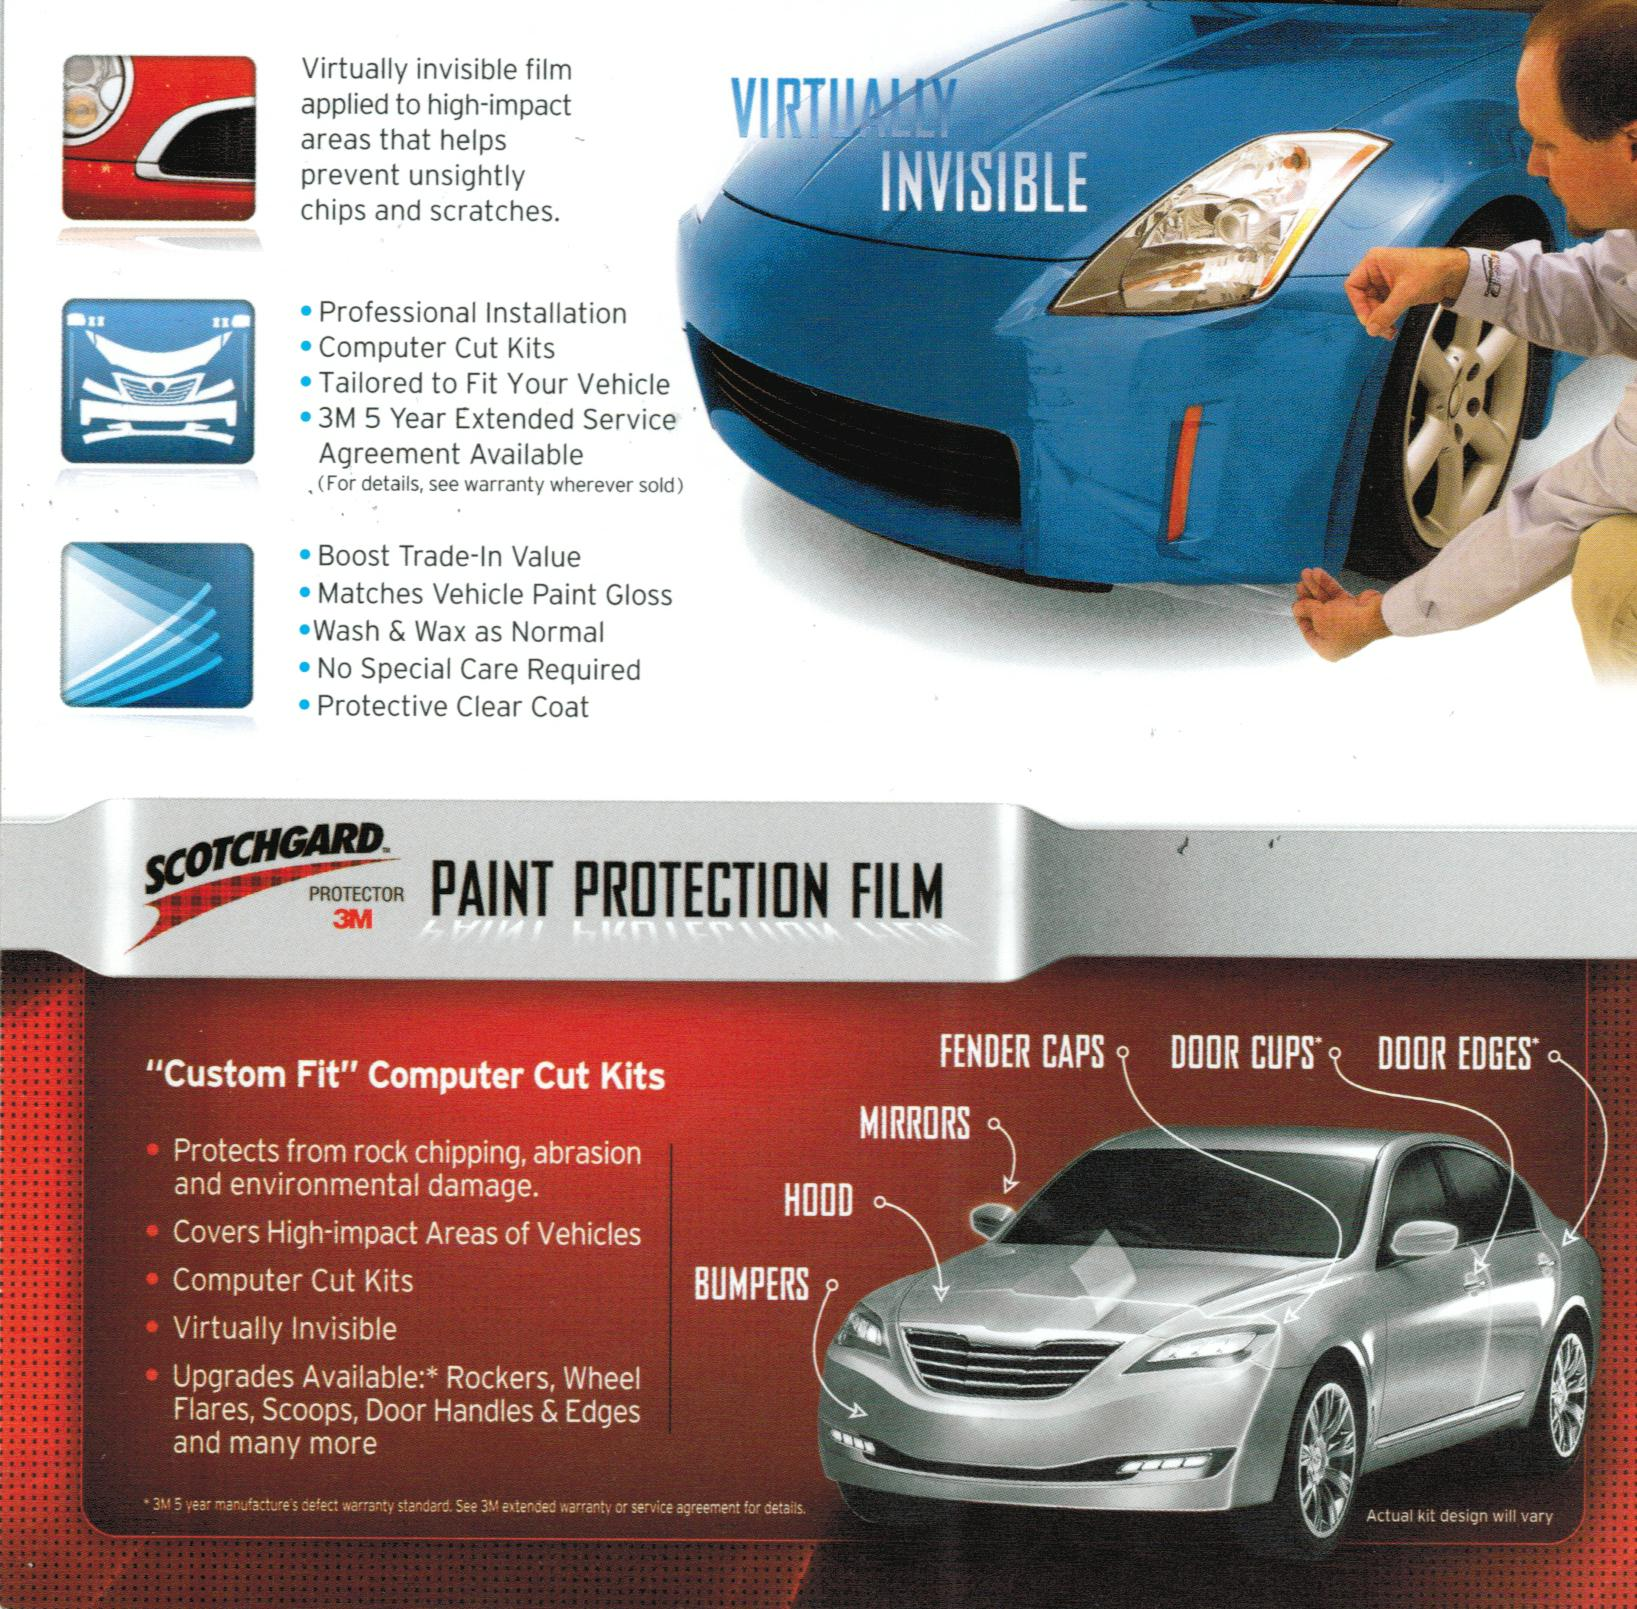 paint film protection car auto body services